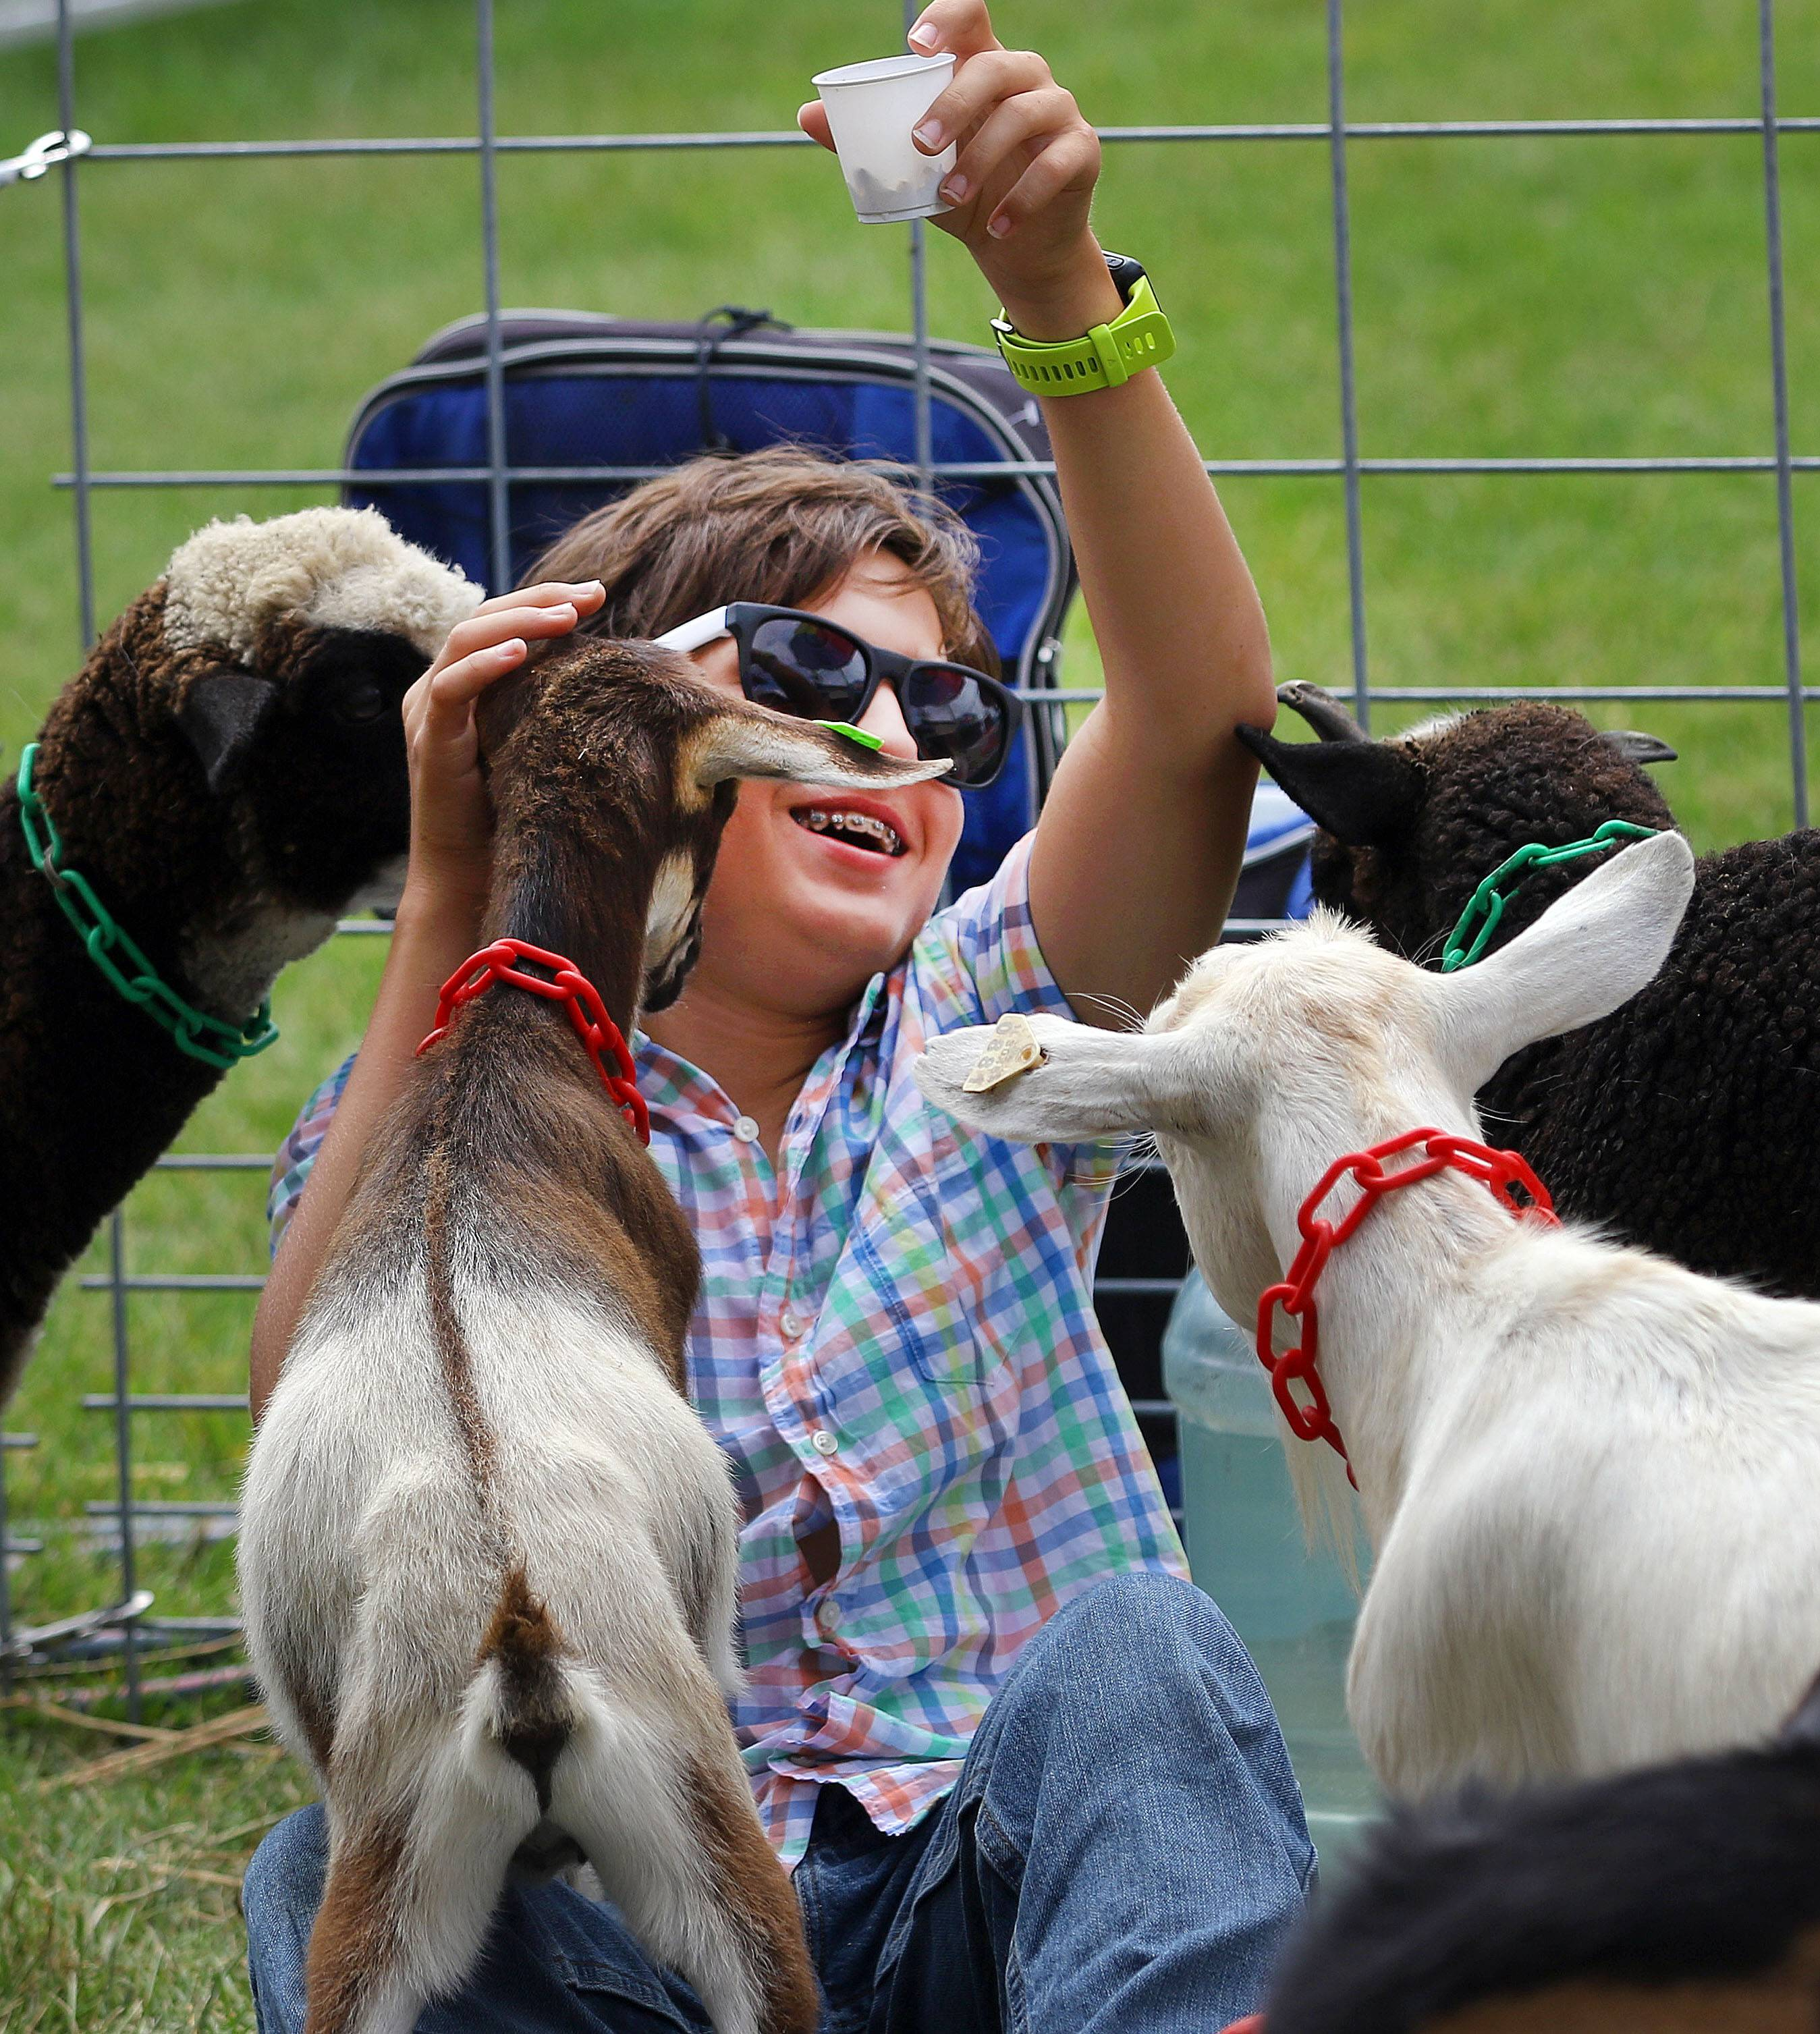 Sebastian Zimmer, 13, of Glenview is mobbed by baby goats in the petting zoo at the Lake County Fair Thursday in Grayslake.